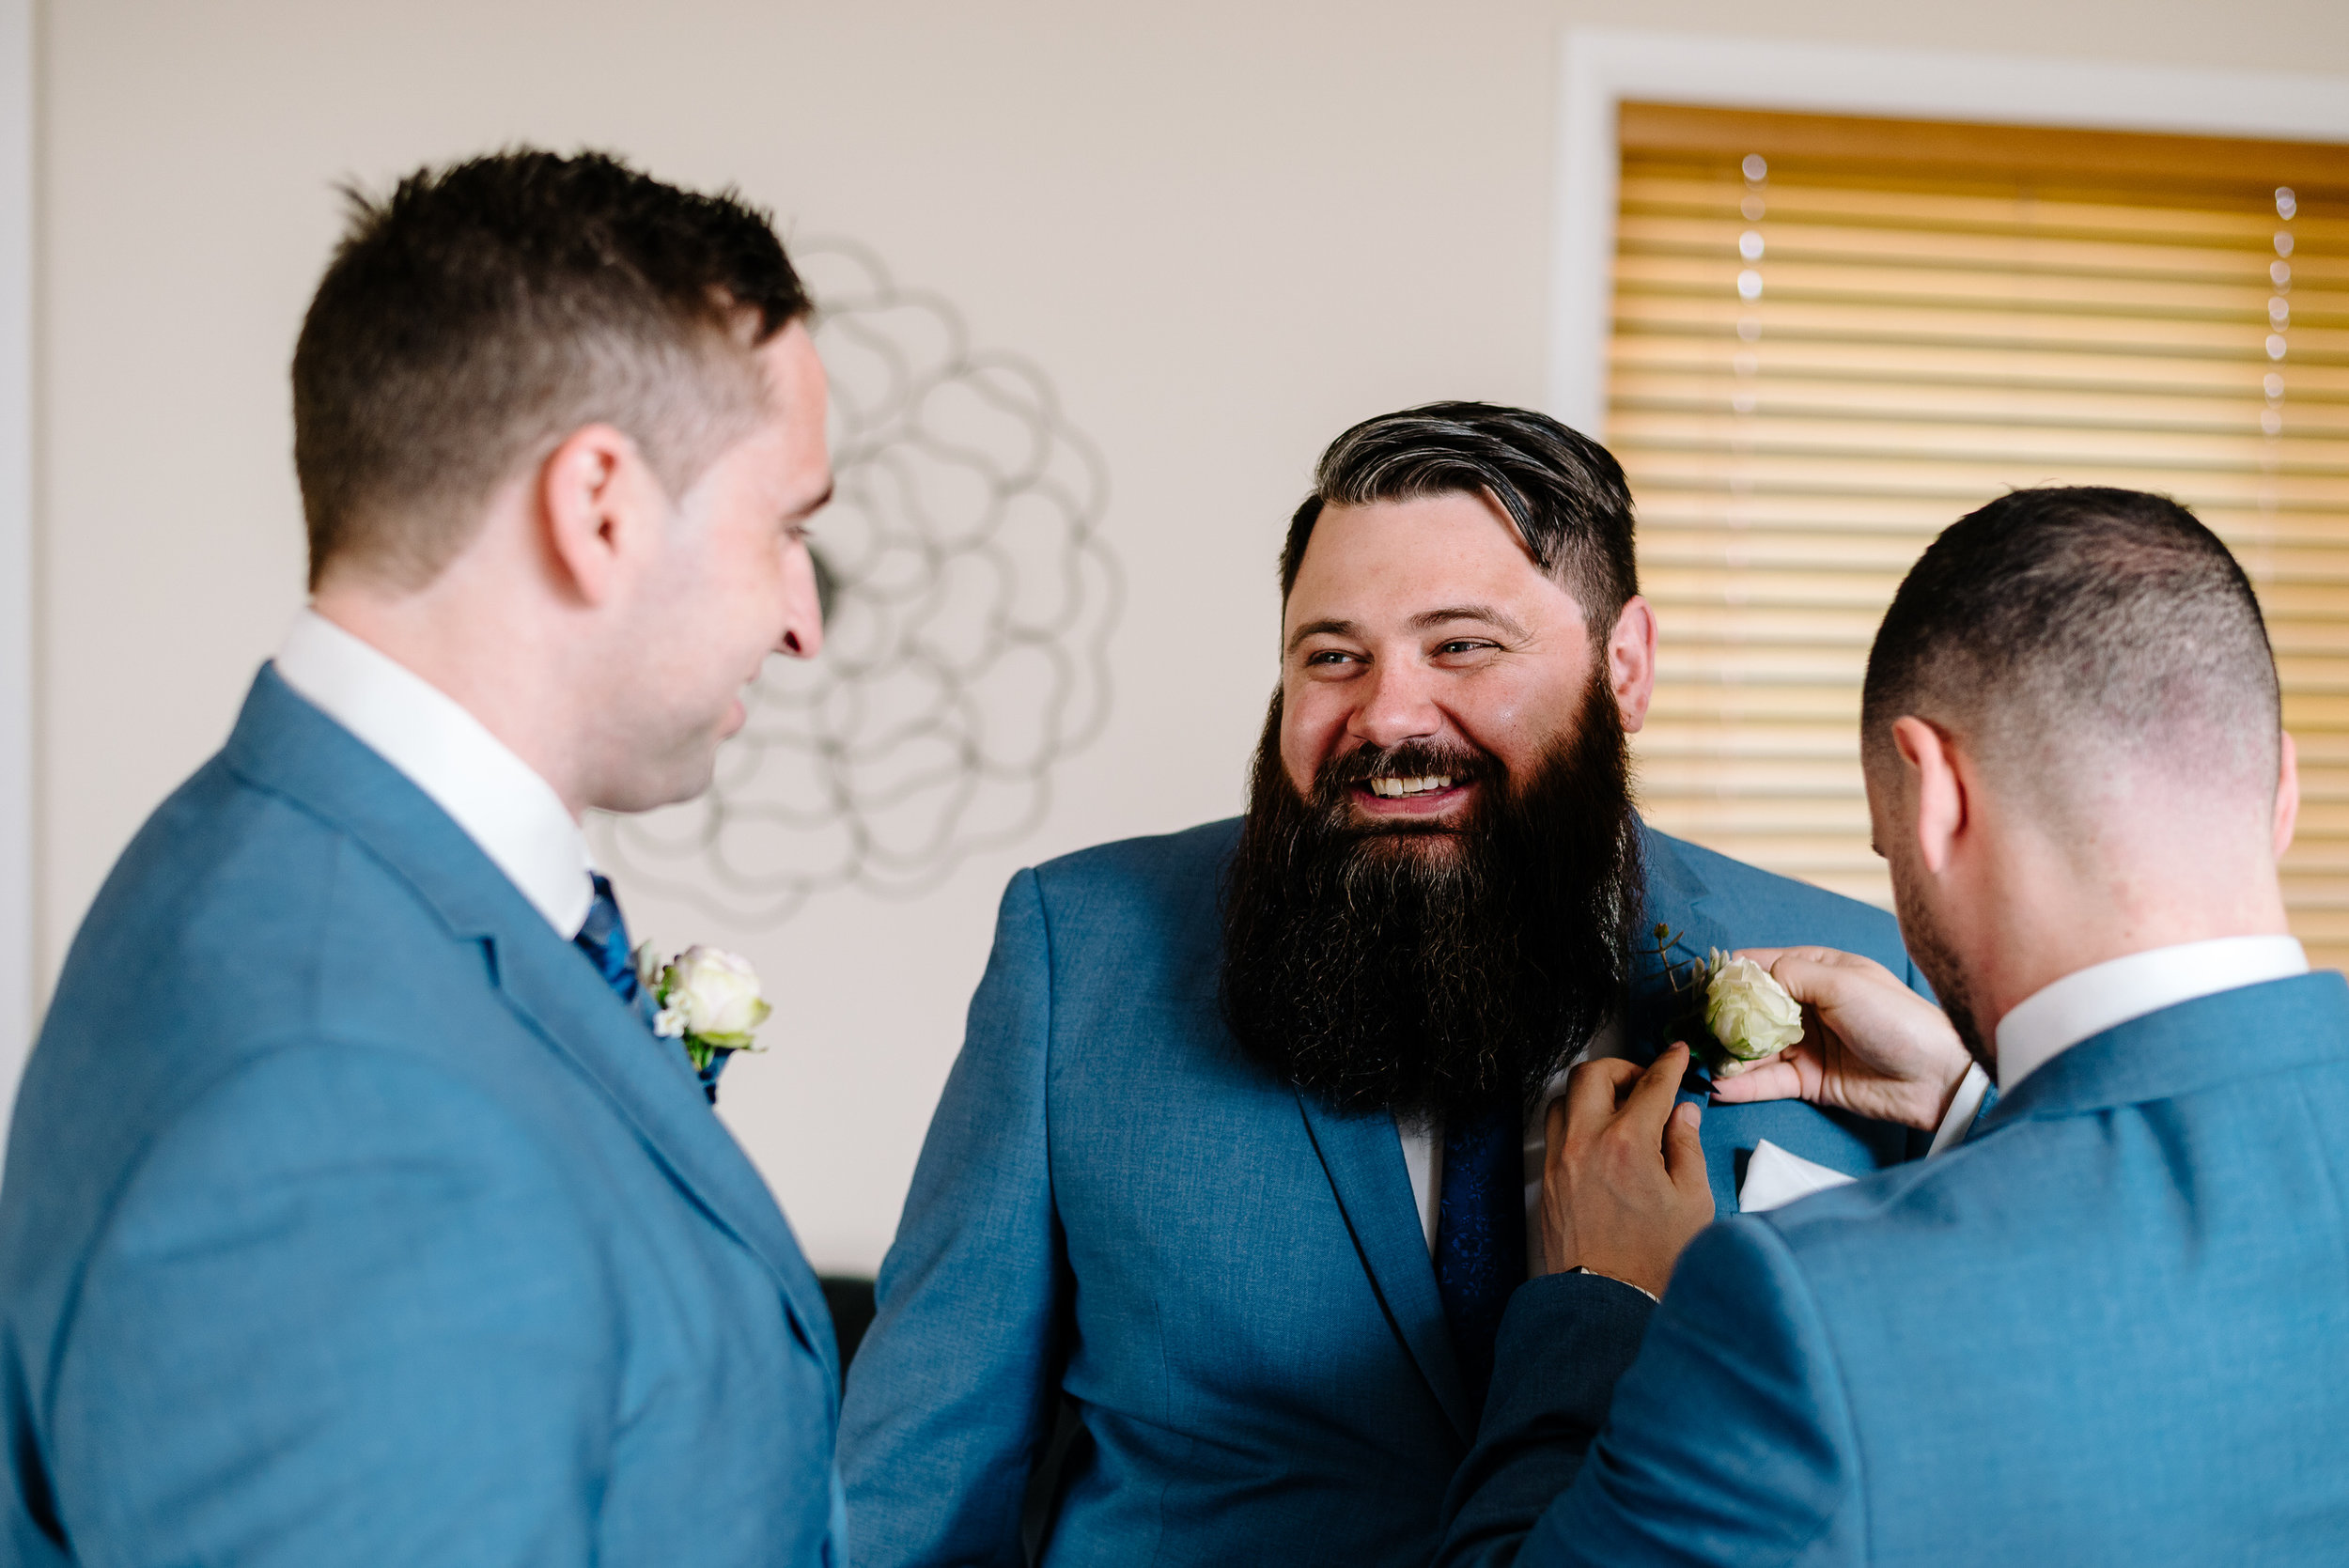 Chateau_Dore_Wedding_Photography_Justin_and_Jim-53.JPG